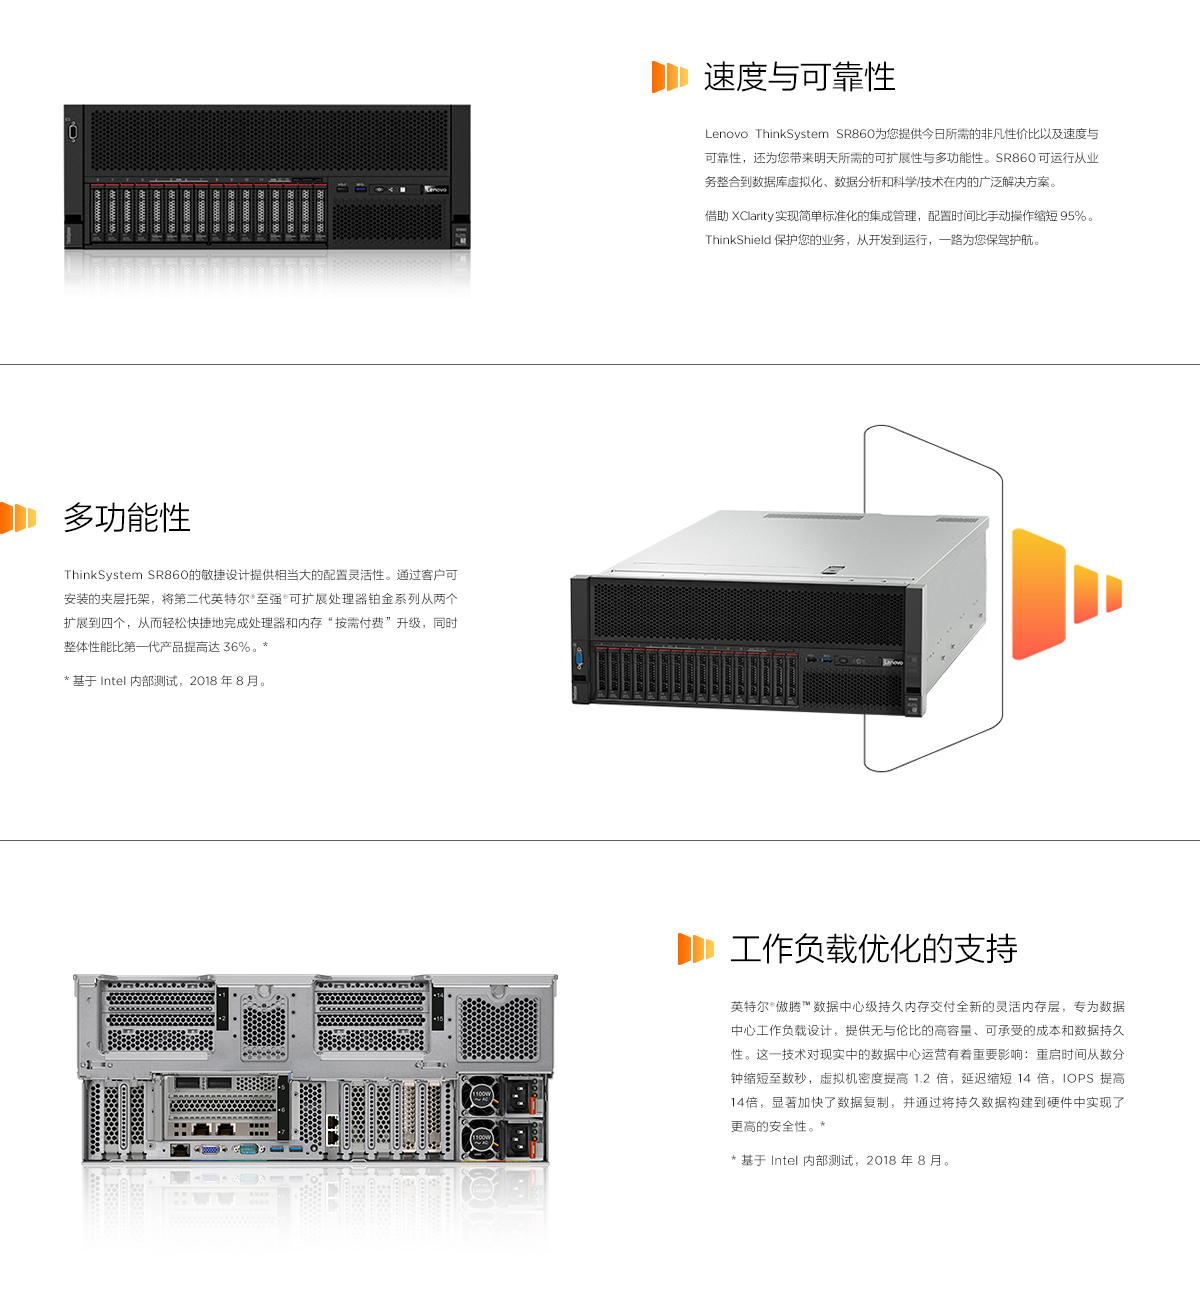 ThinkSystem SR860